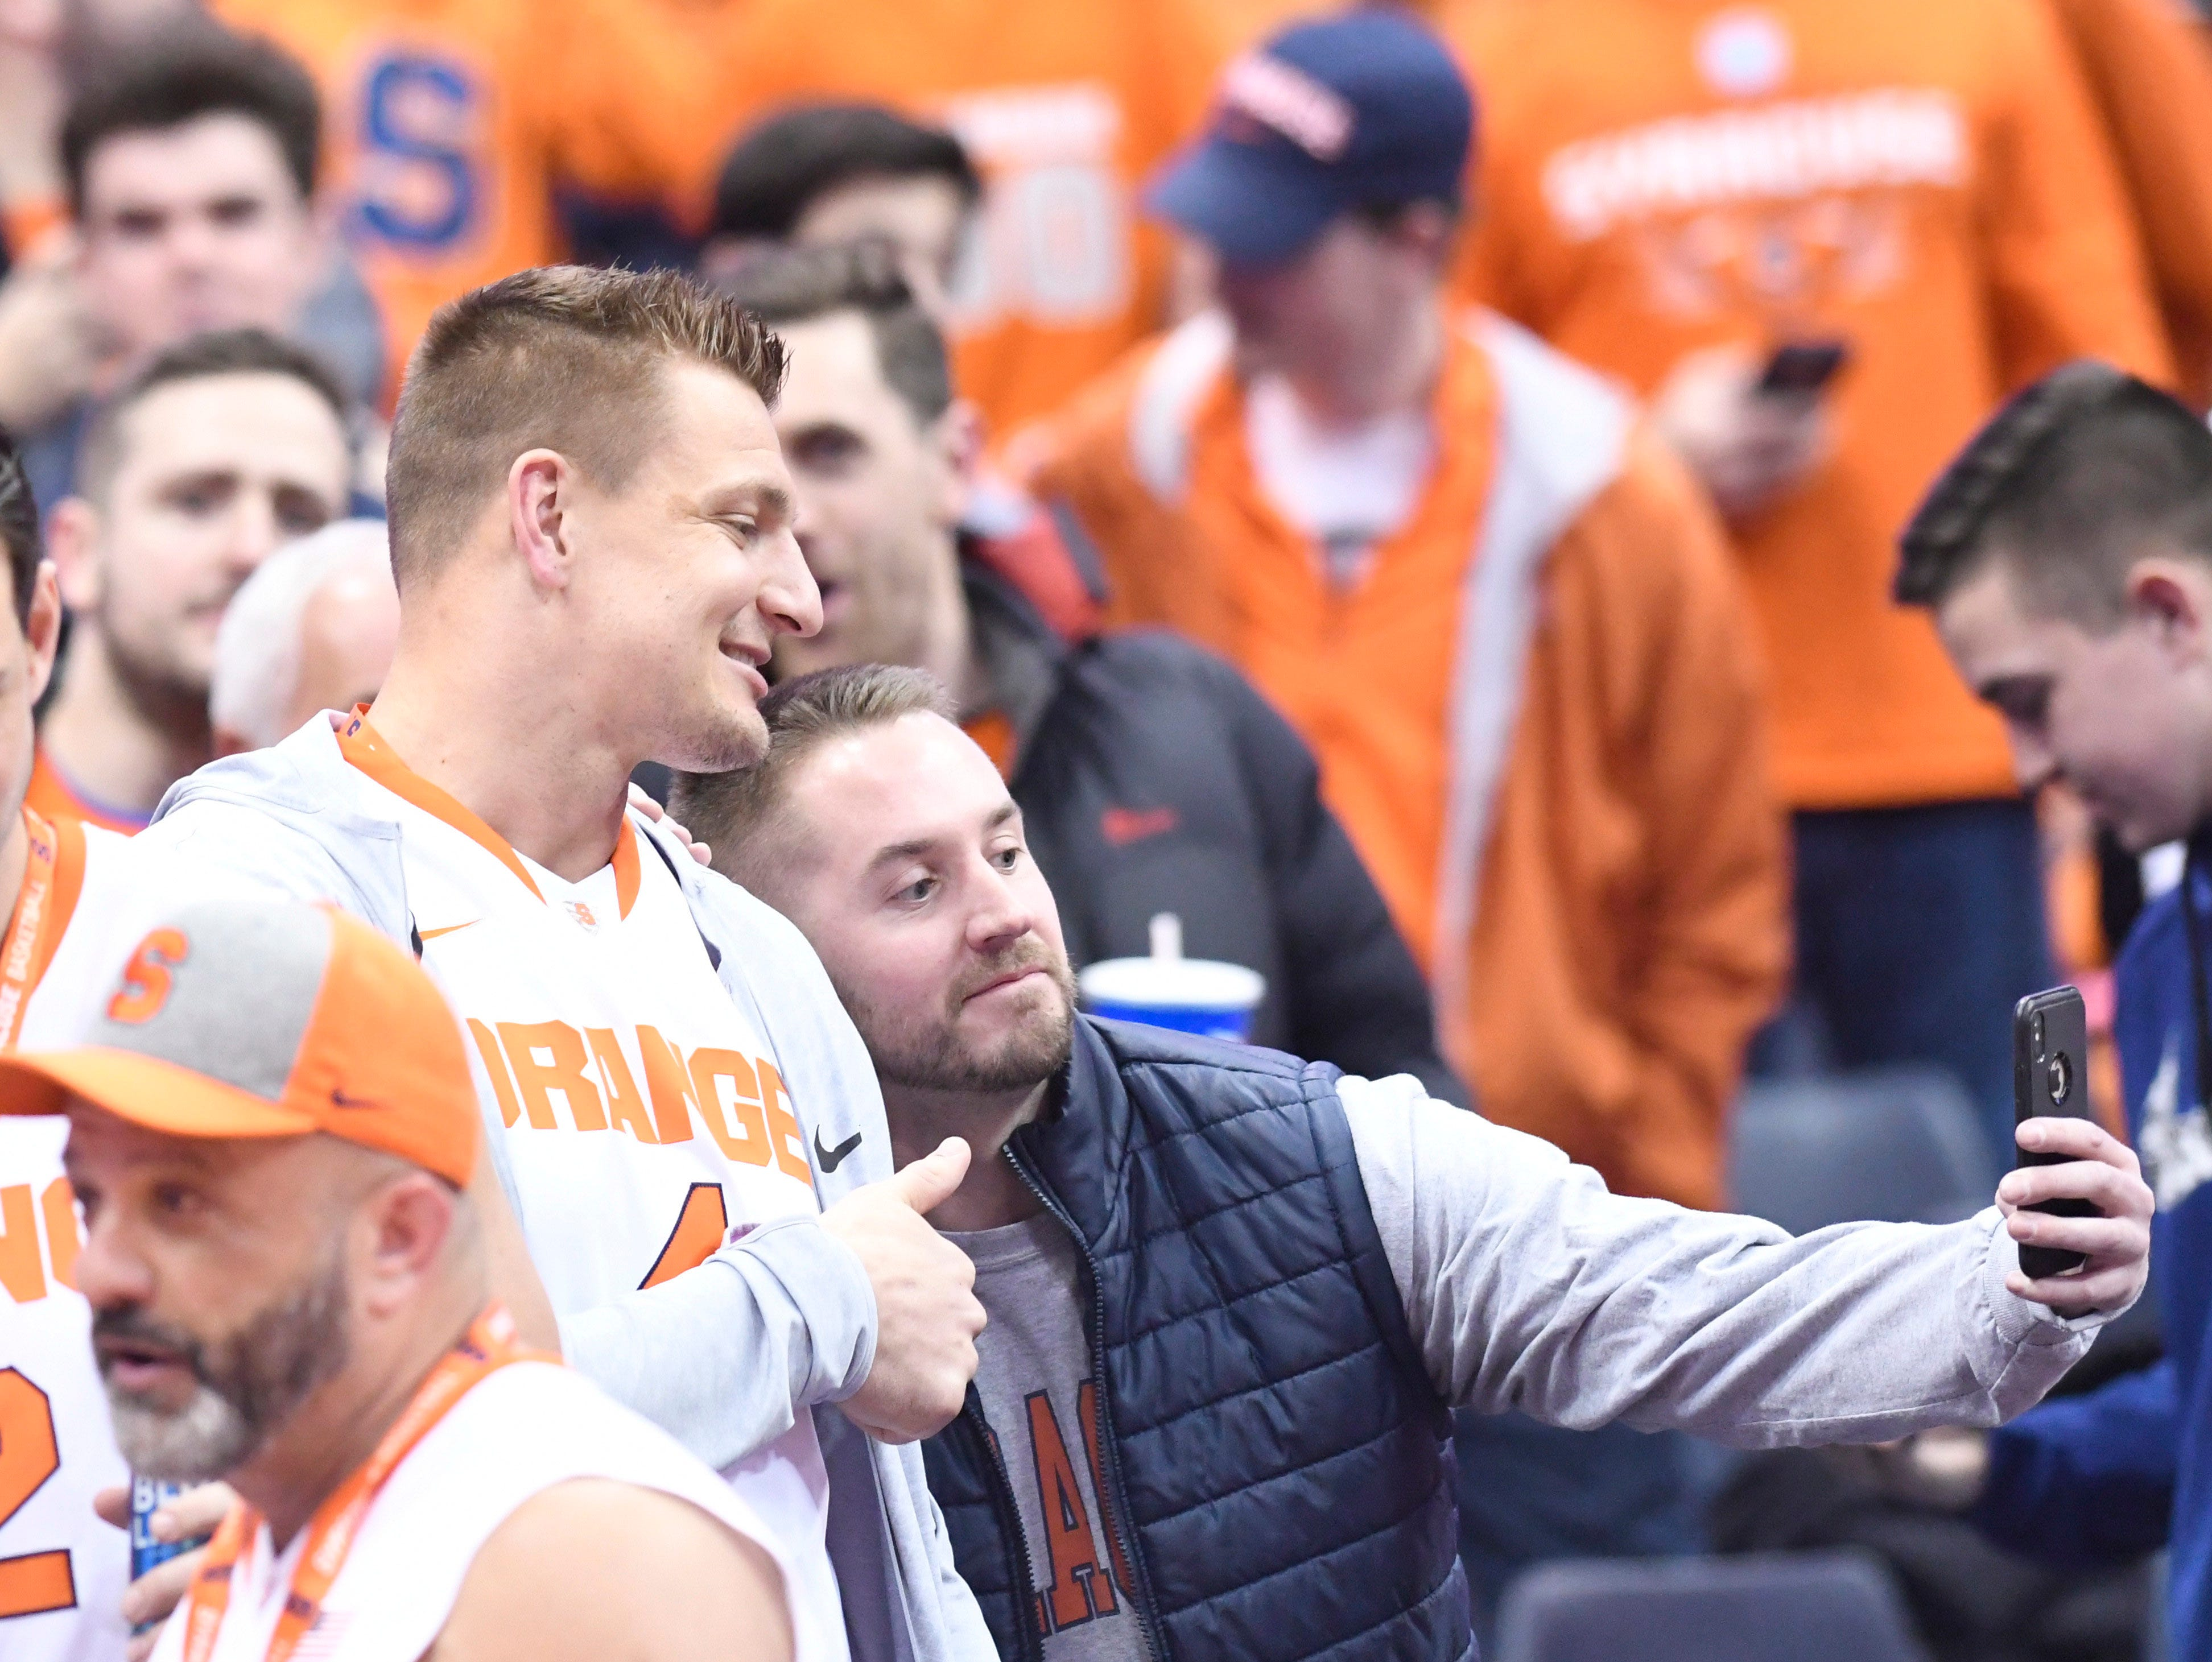 Feb 23, 2019; Syracuse, NY, USA; New England patriot Rob Gronkowski poses with a fan for a selfie prior to a game between the Syracuse Orange and the Duke Blue Devils at the Carrier Dome. Mandatory Credit: Mark Konezny-USA TODAY Sports